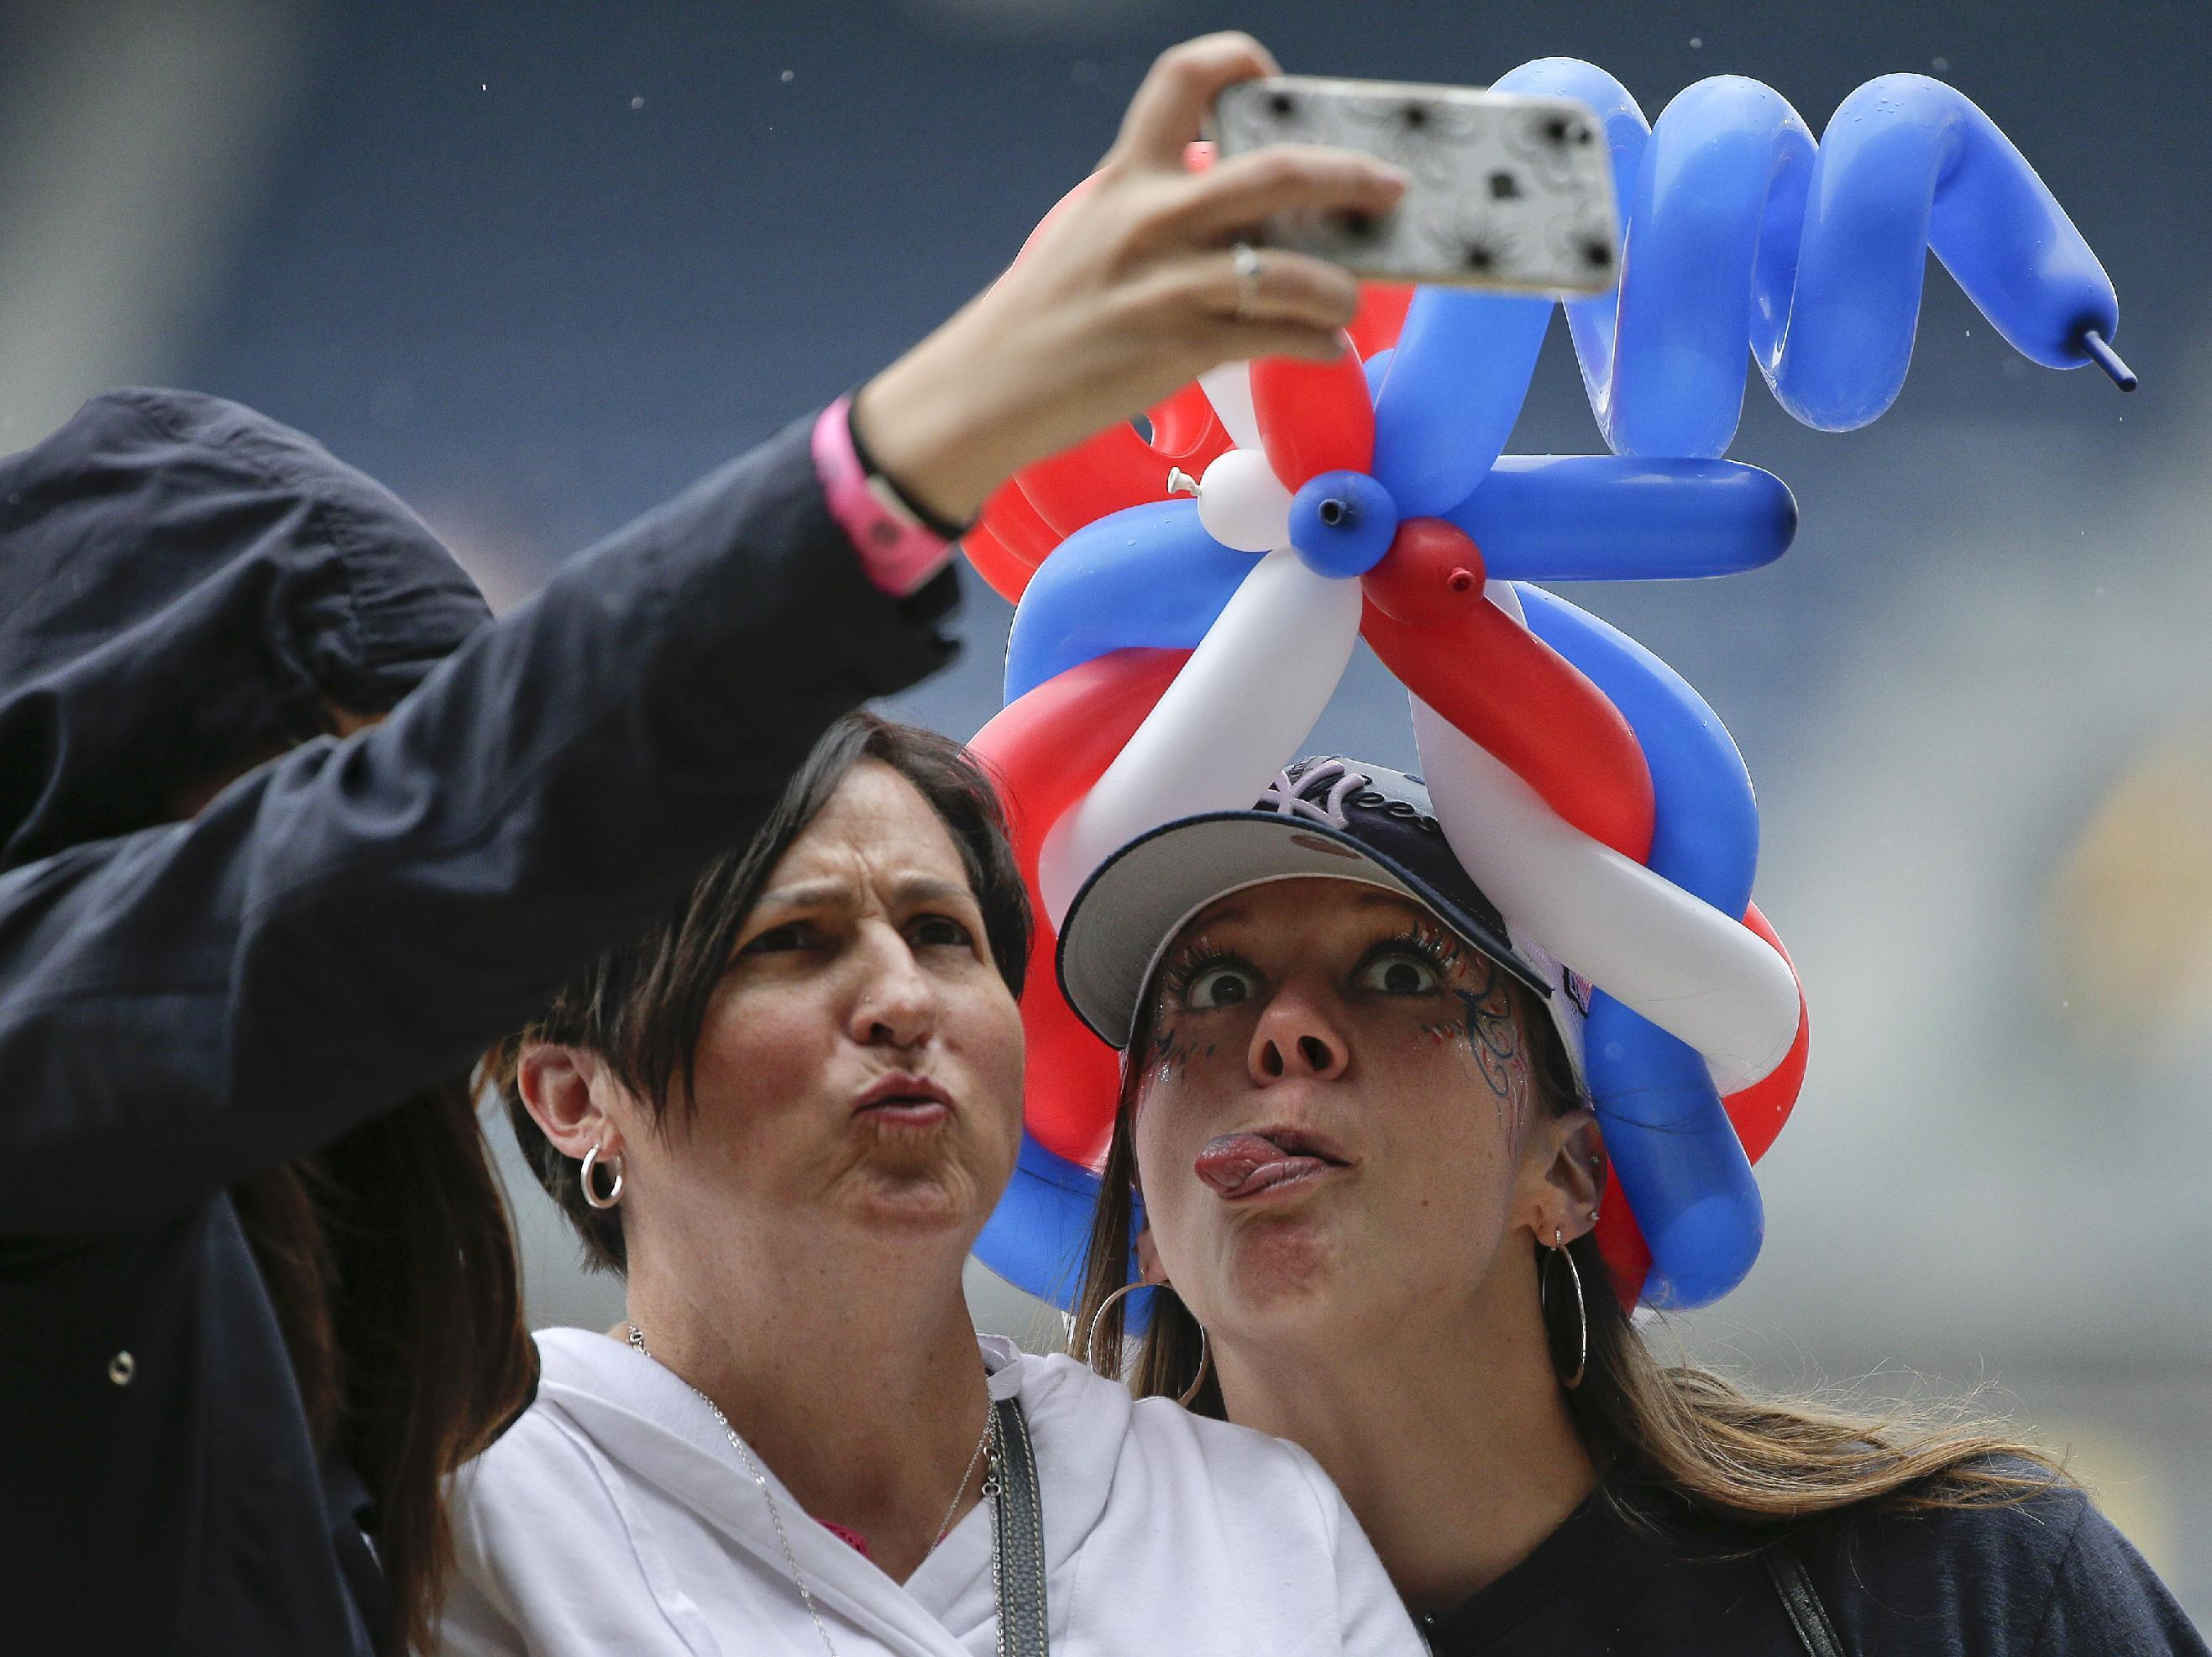 Angels will try to set record for most people using selfie sticks